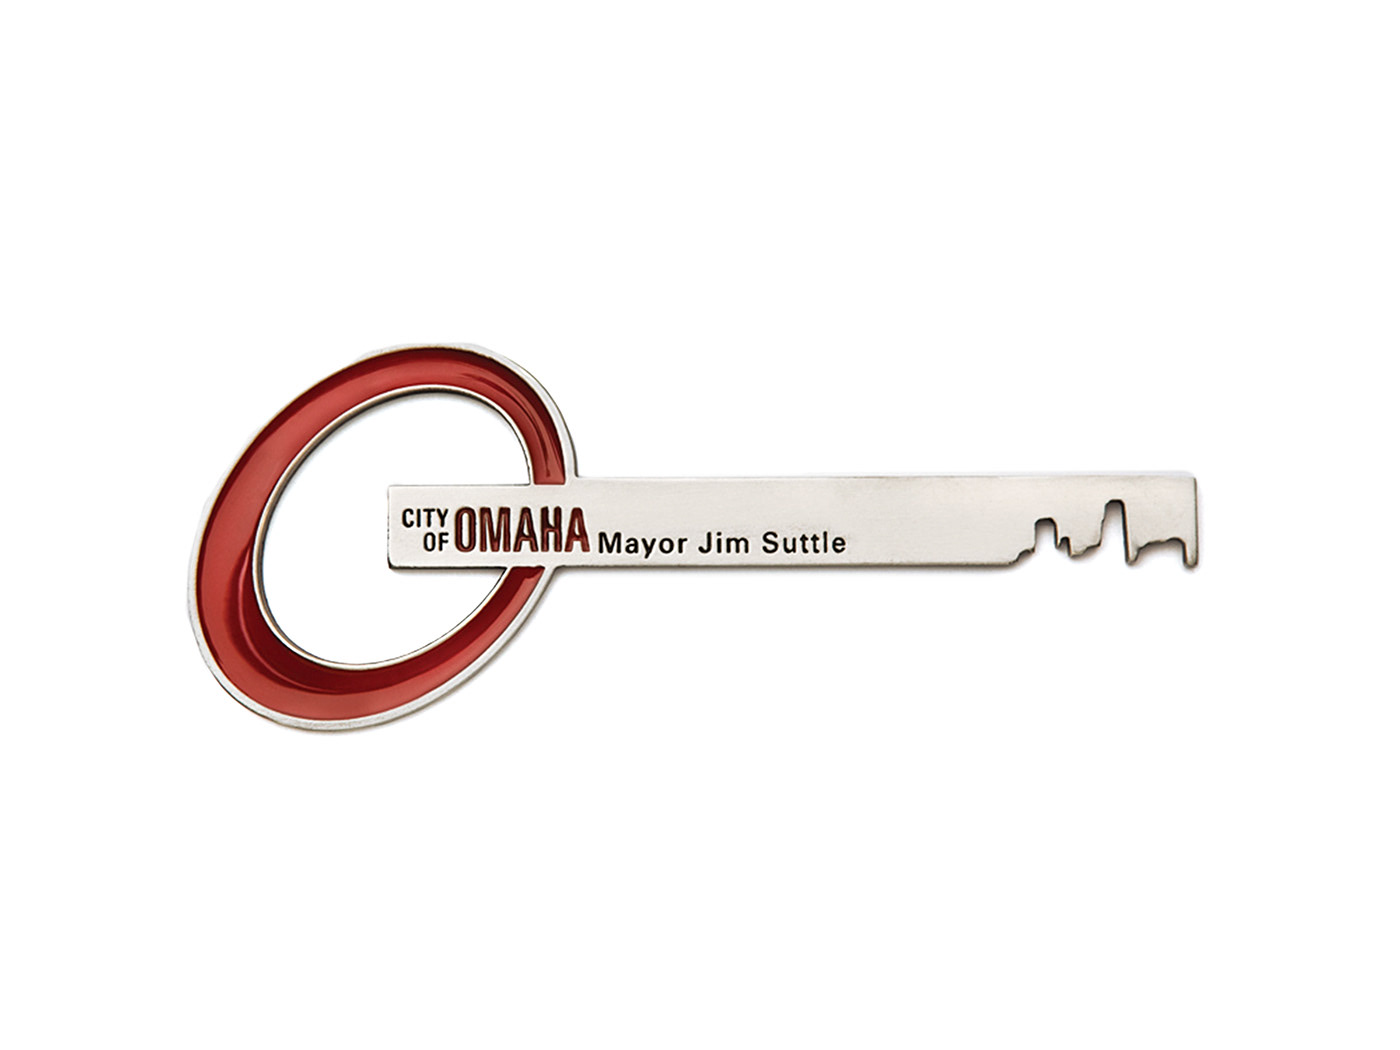 The Key to the City of Omaha, Nebraska